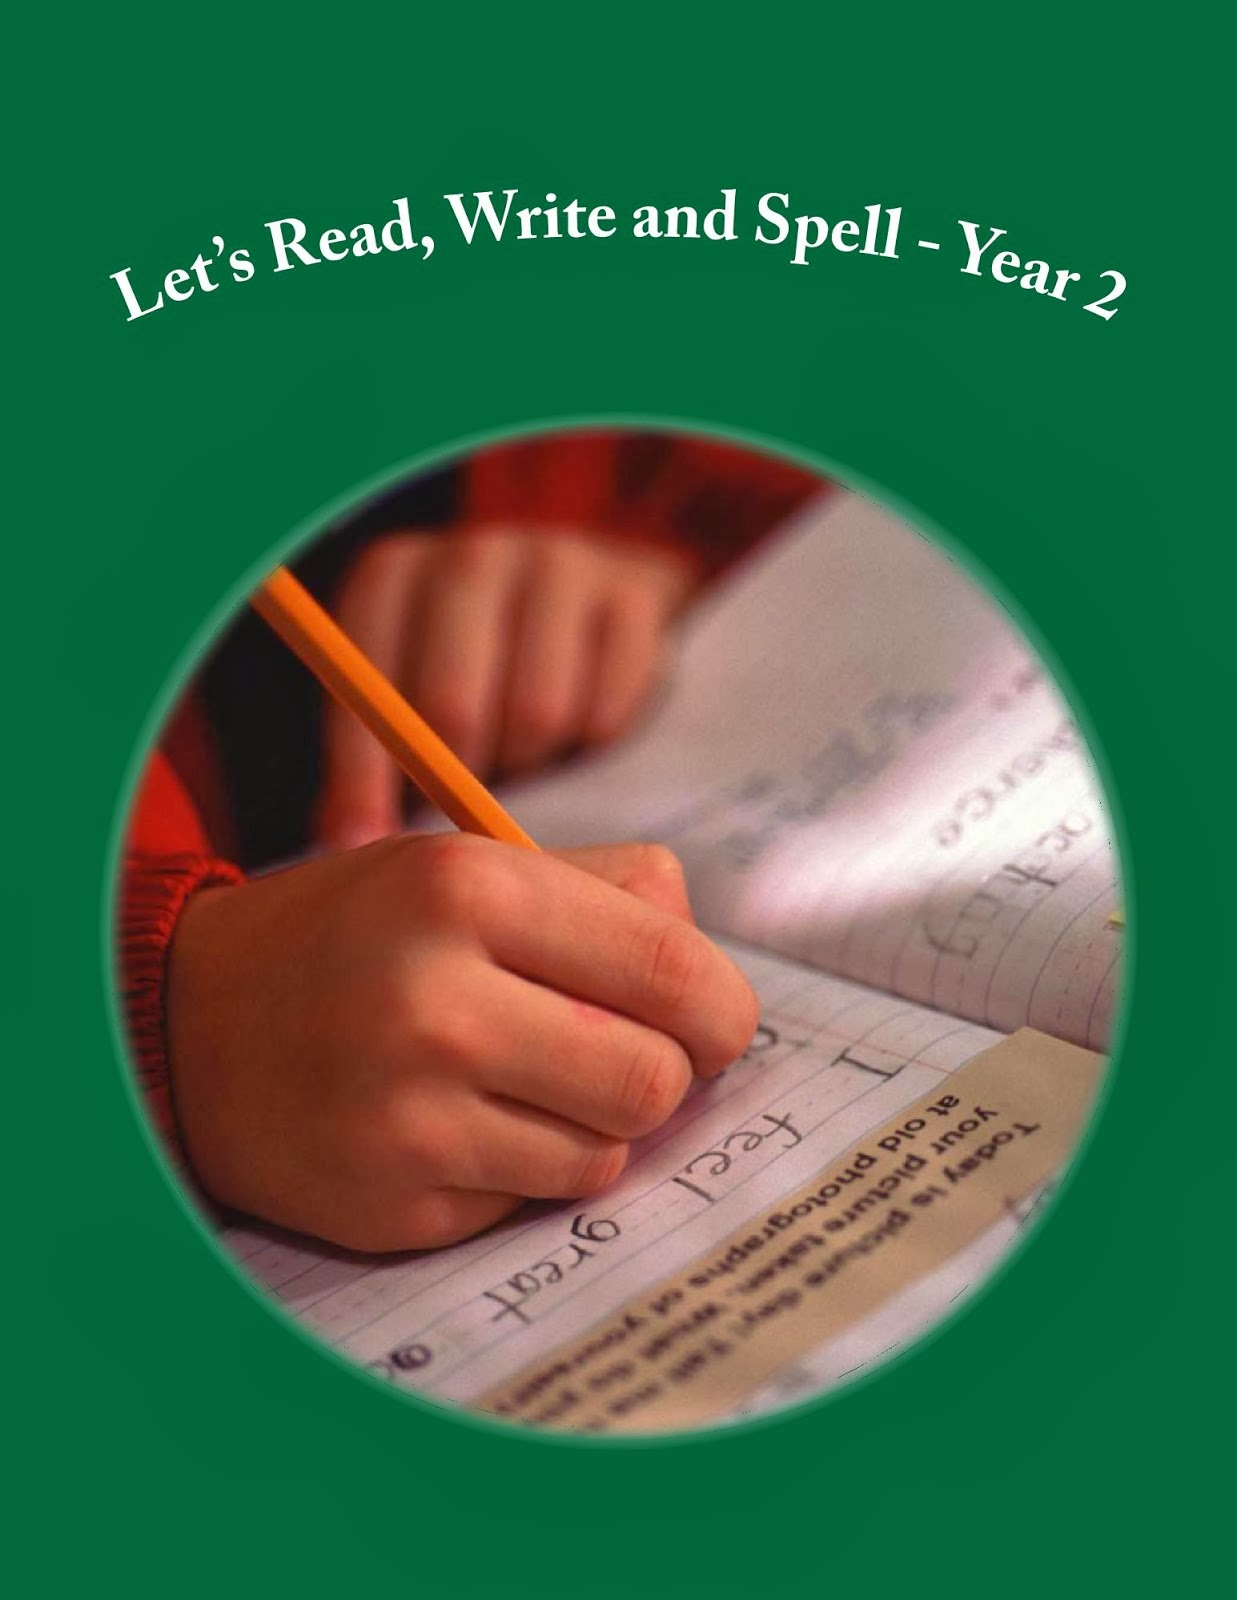 Let's Read , Write and Spell